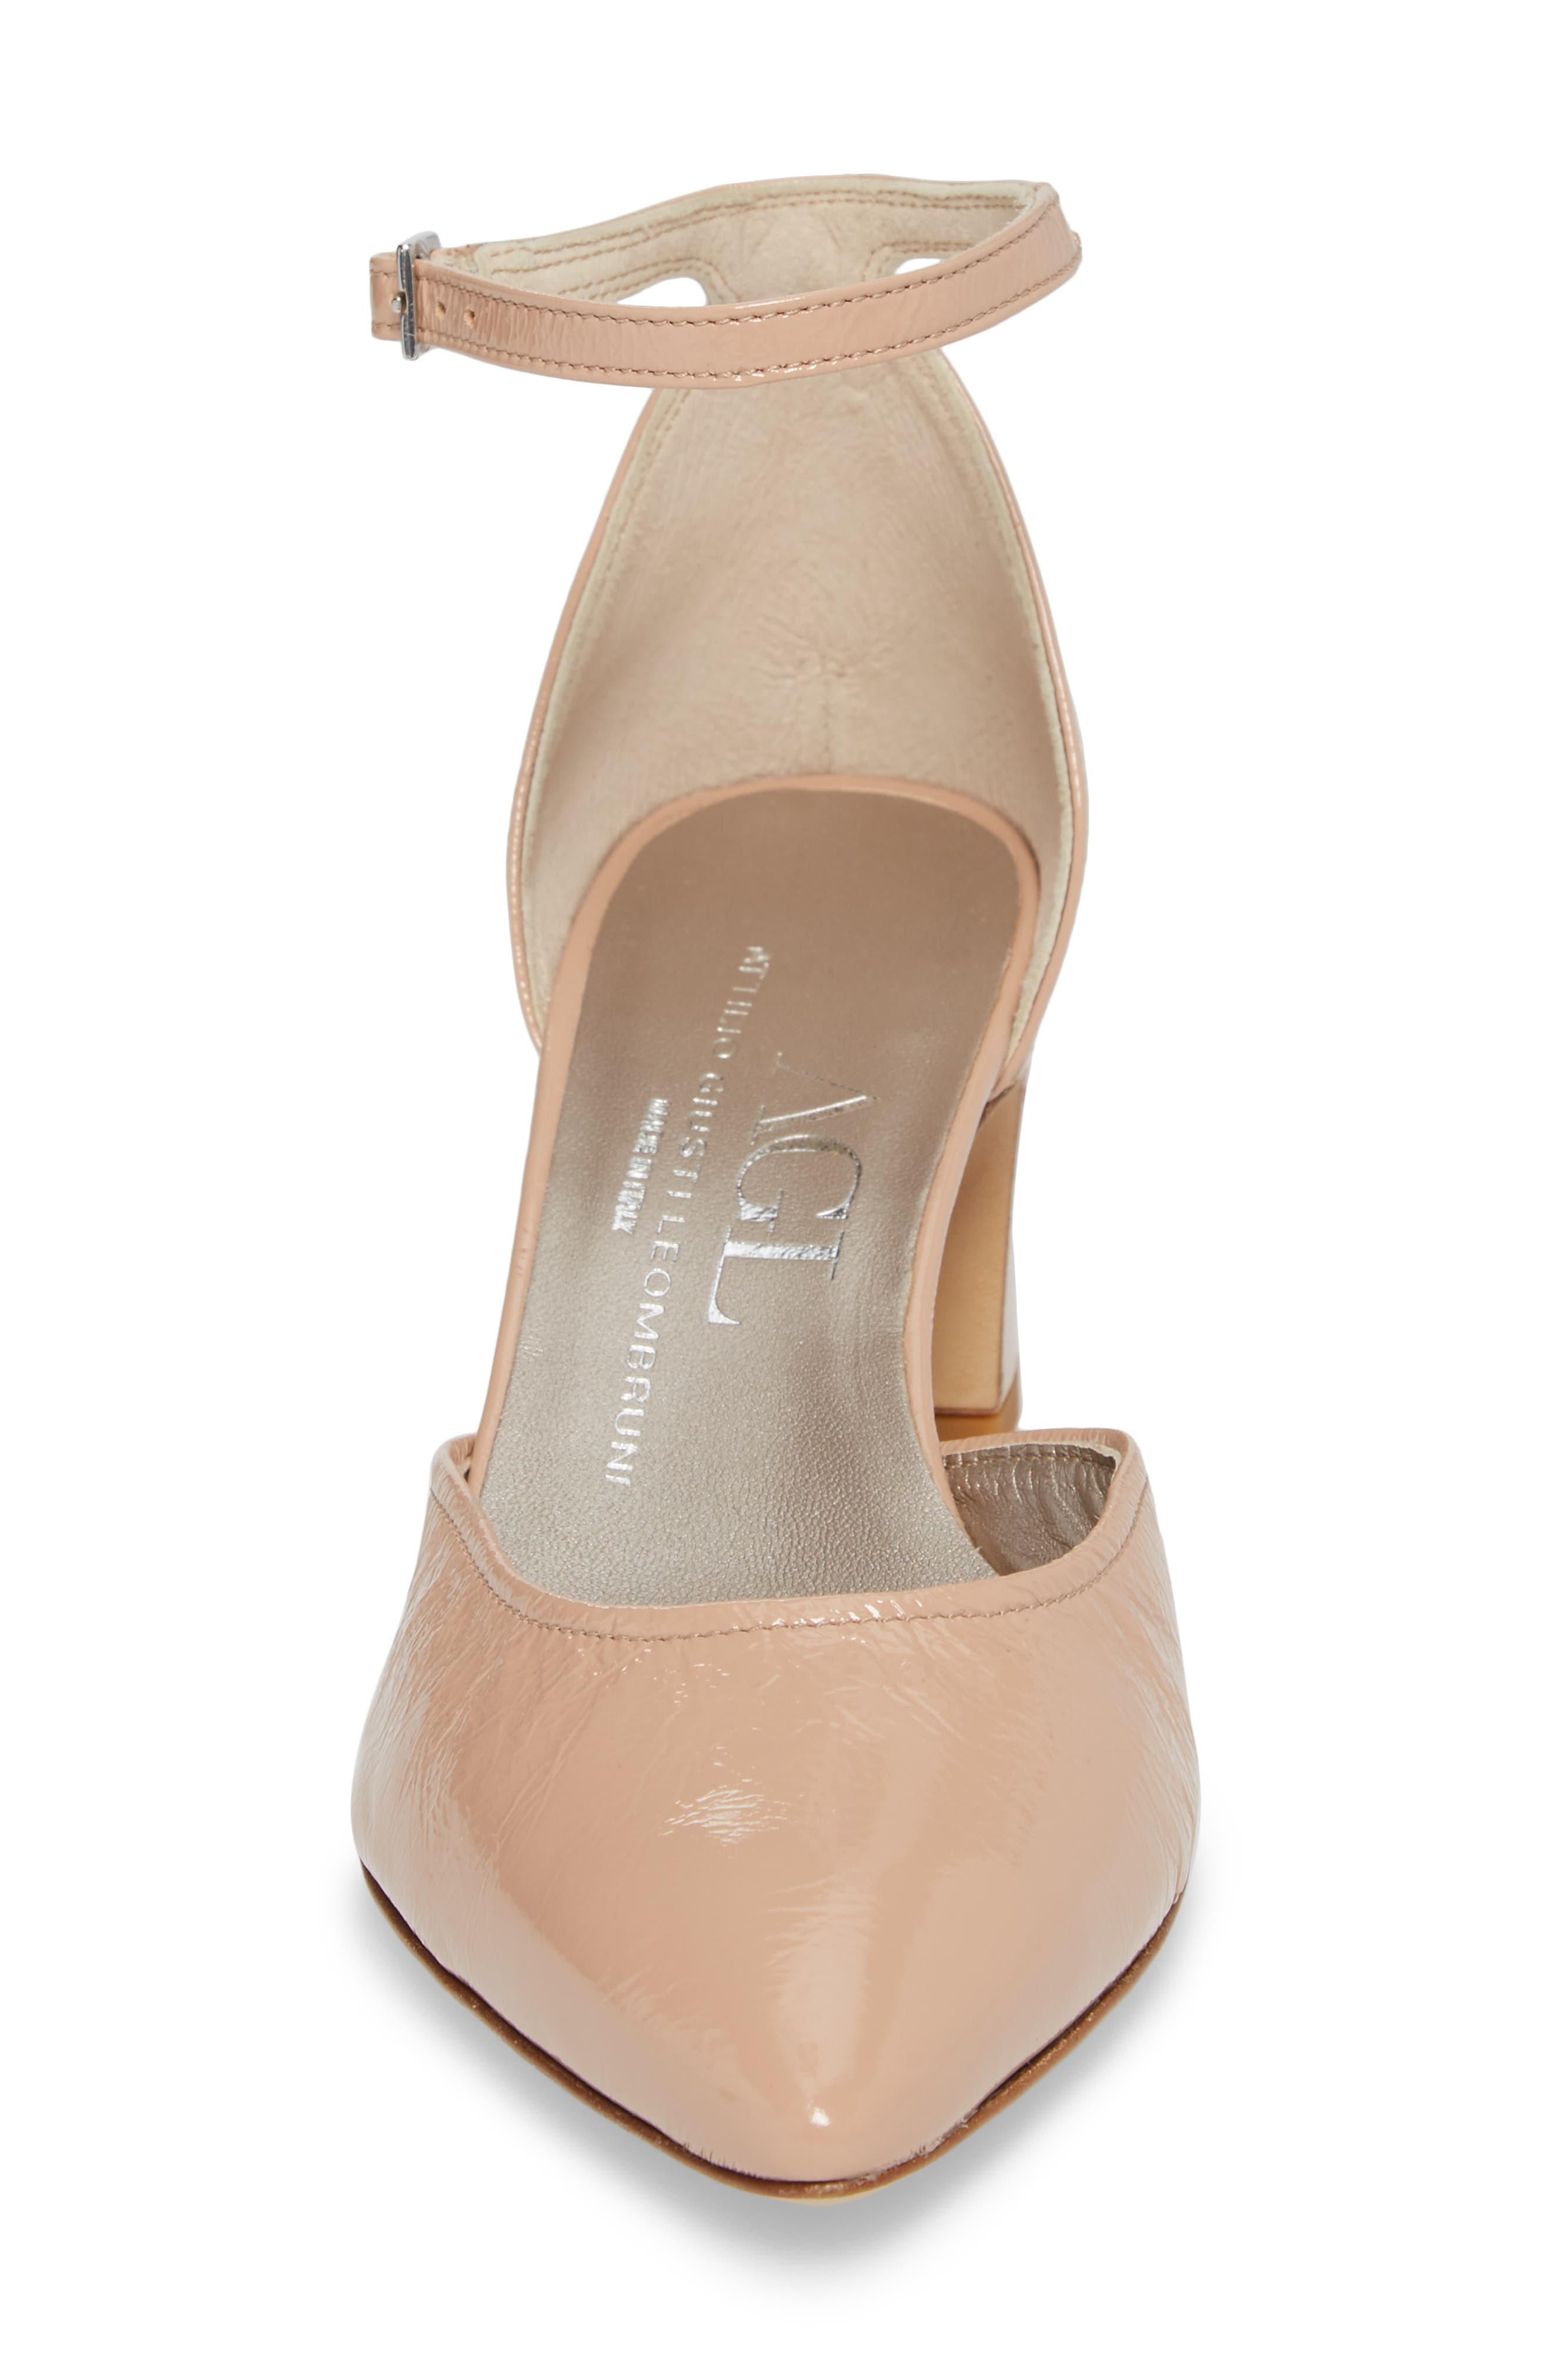 d'Orsay Ankle Strap Pump,                             Alternate thumbnail 4, color,                             Nude Glammy Leather